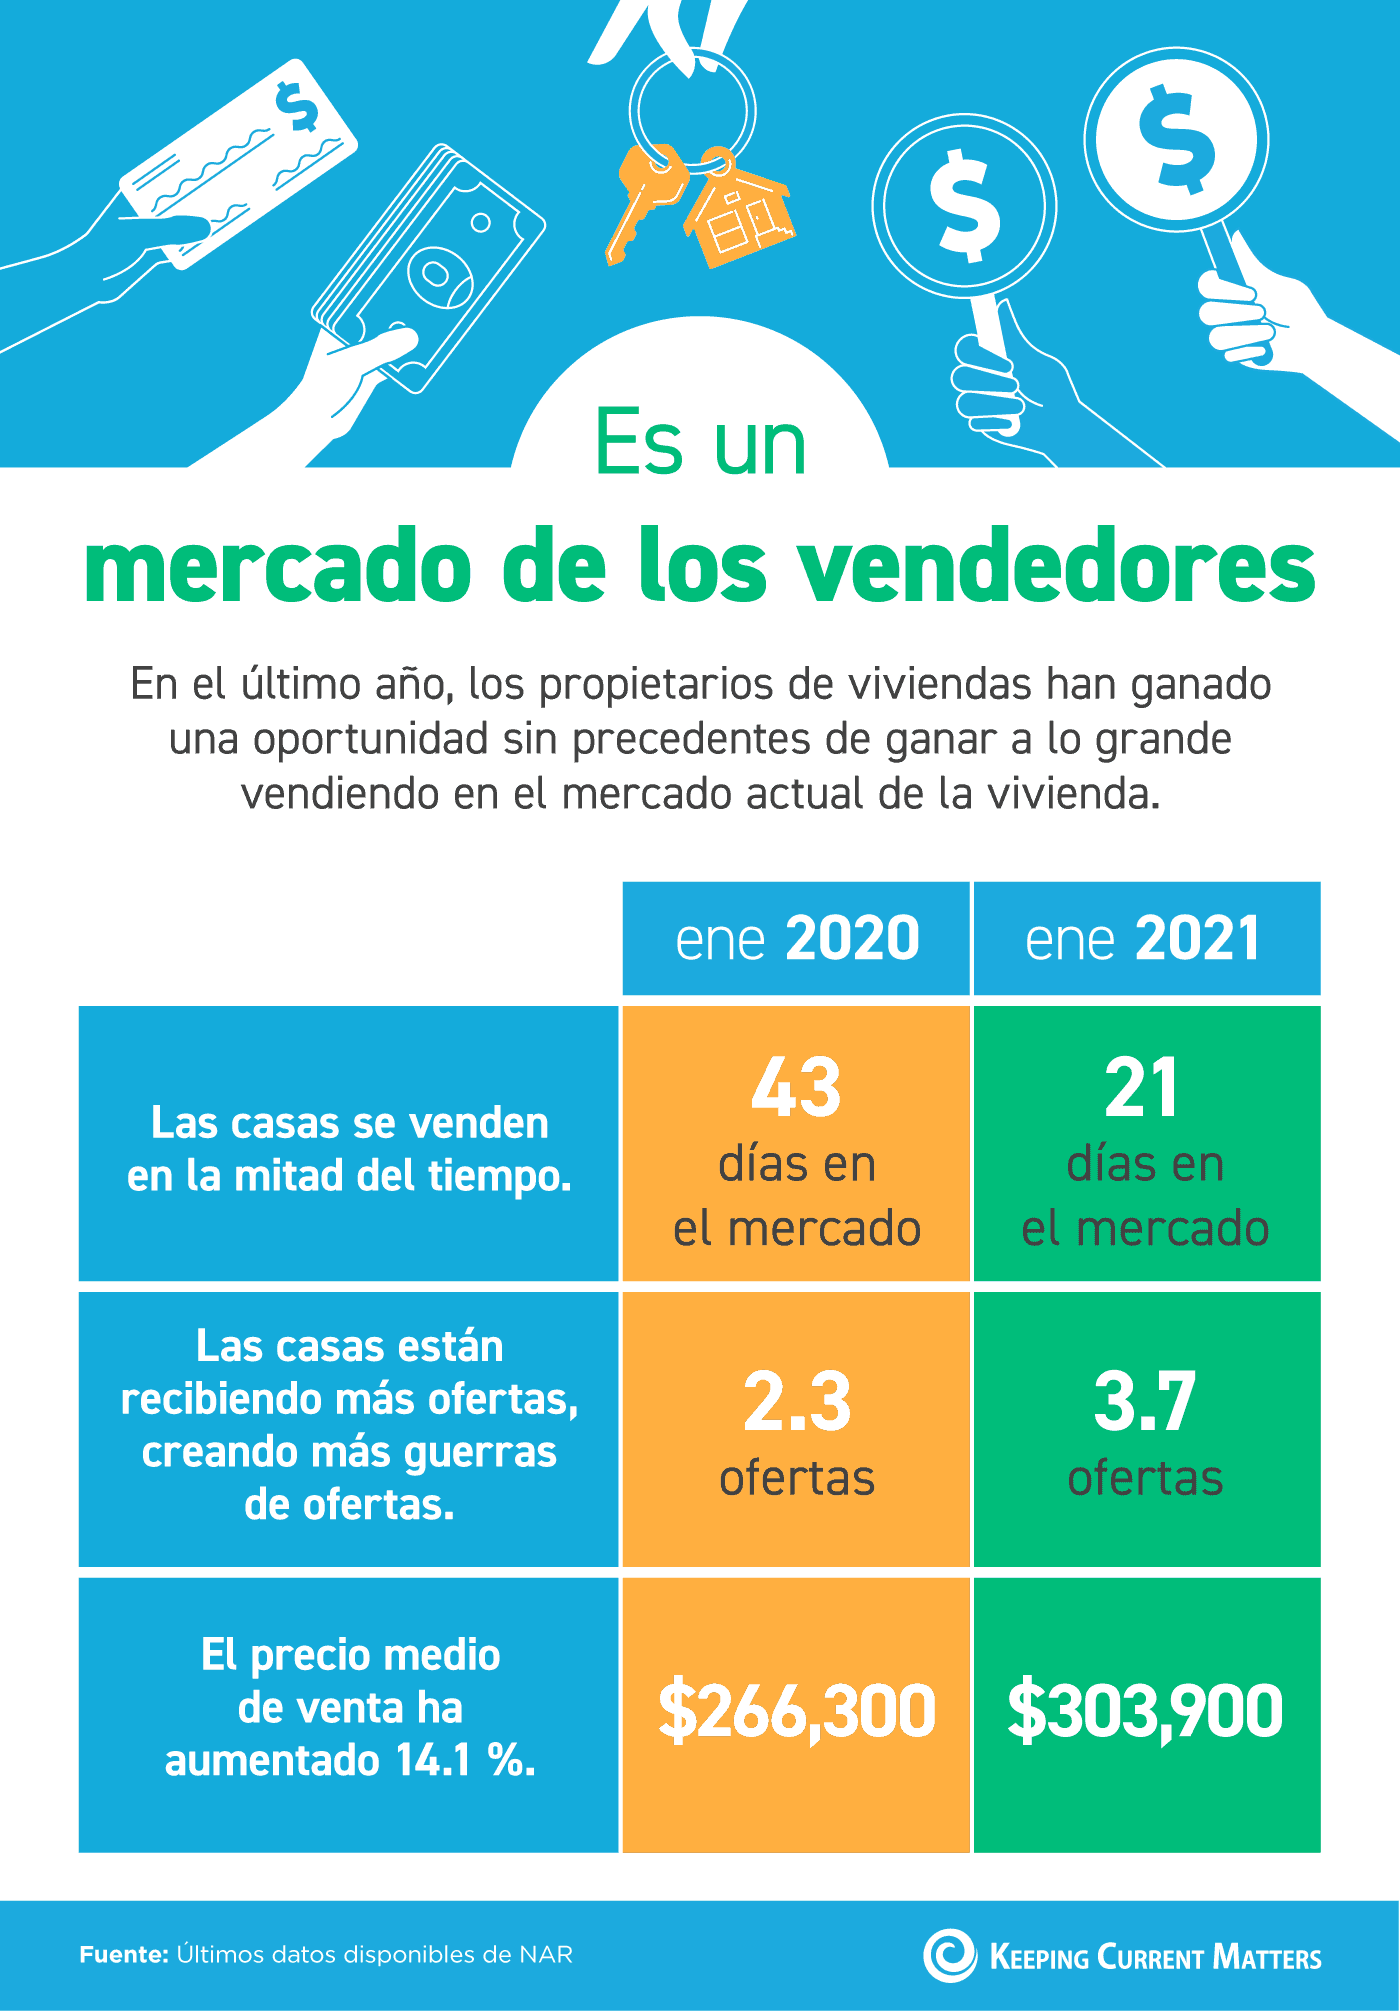 Es un mercado de los vendedores [Infografía] | Keeping Current Matters